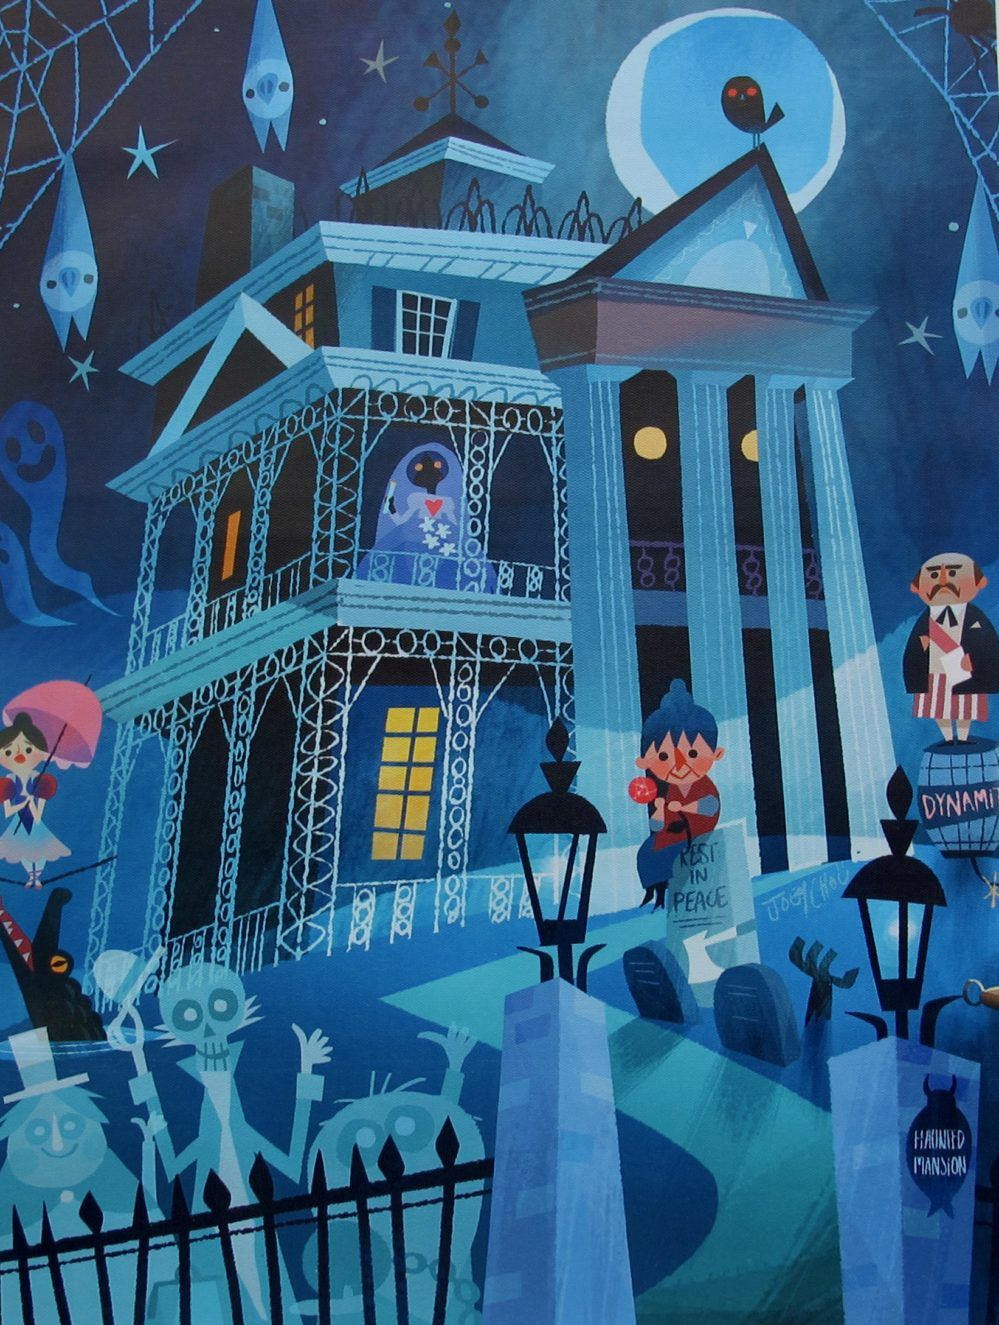 DISNEY HAUNTED MANSION RIDE Art Giclee on Canvas by Joey Chou